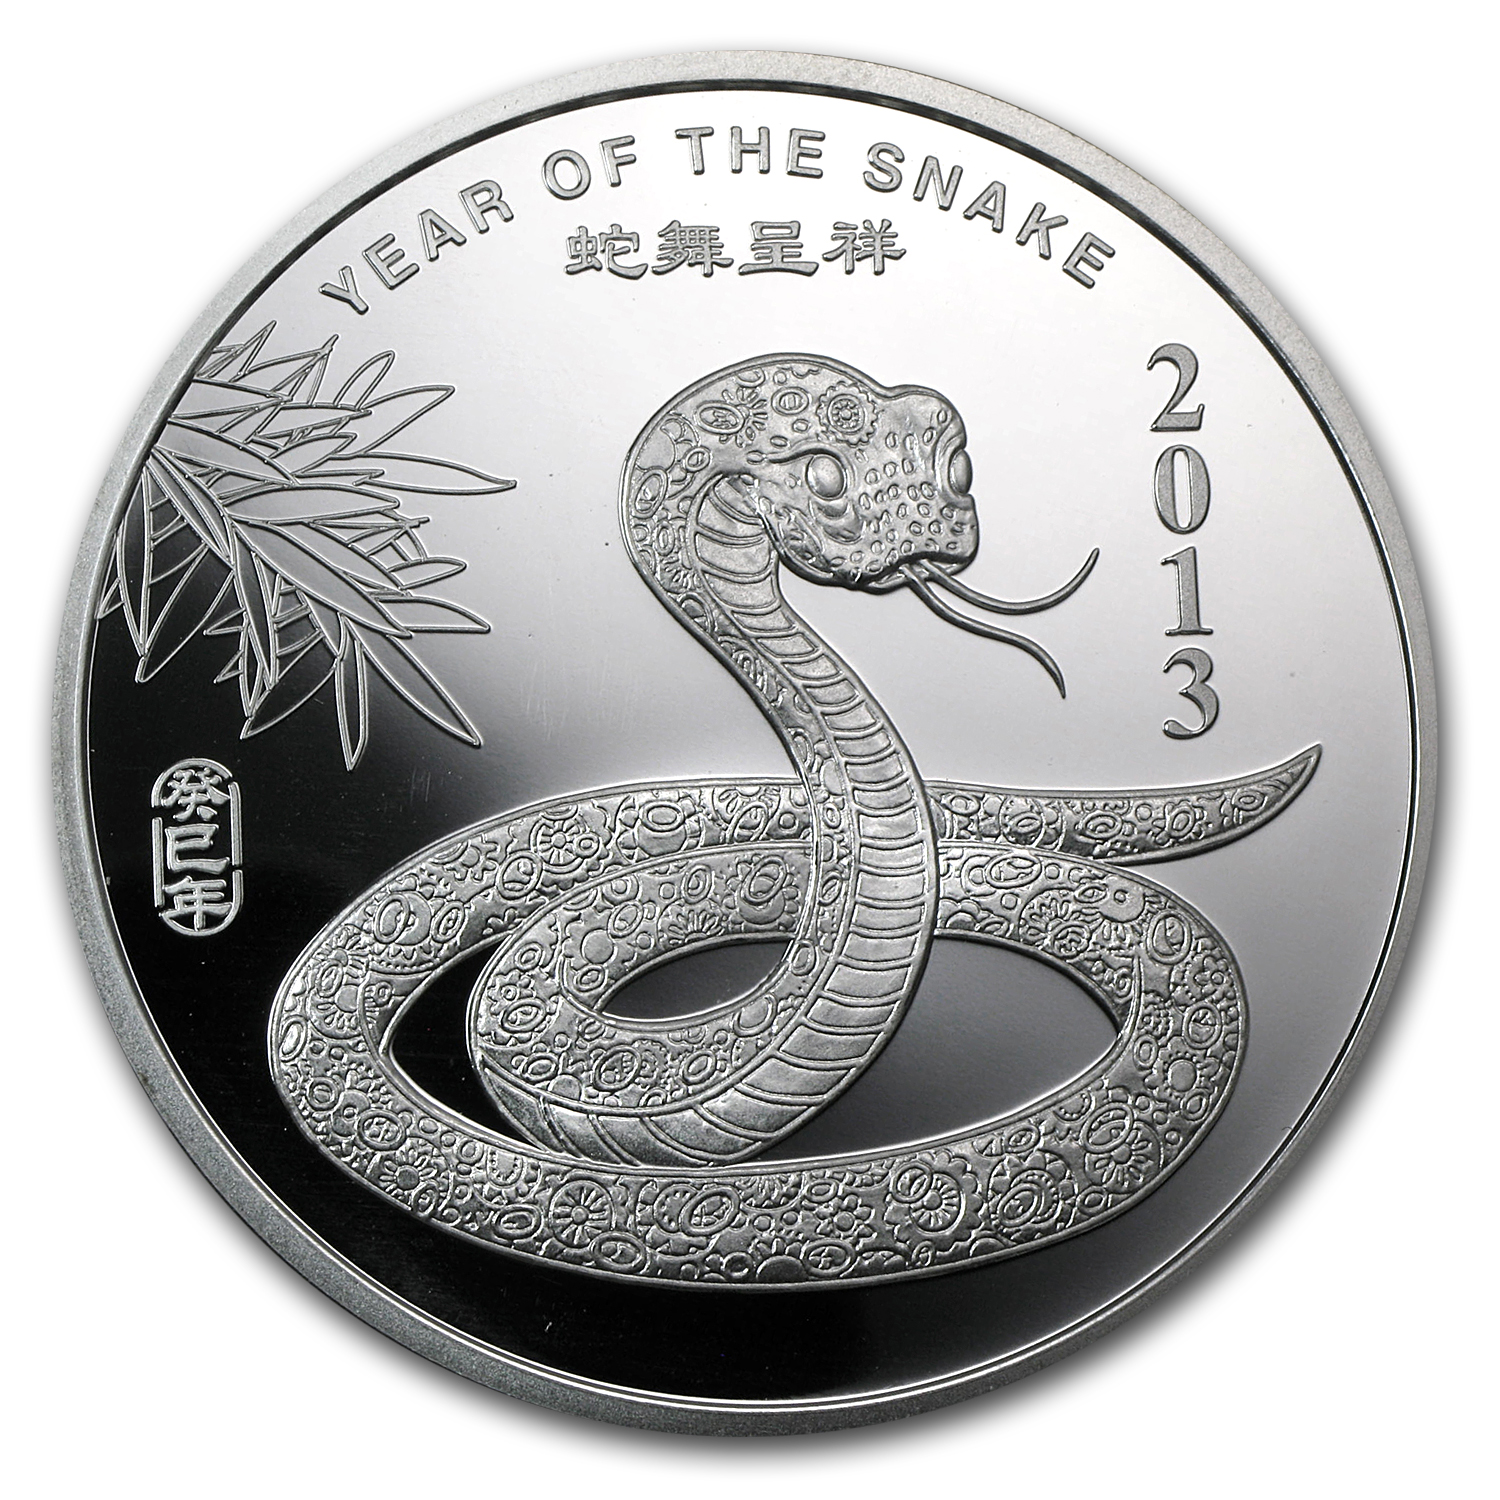 2 oz Silver Round - APMEX (2013 Year of the Snake)